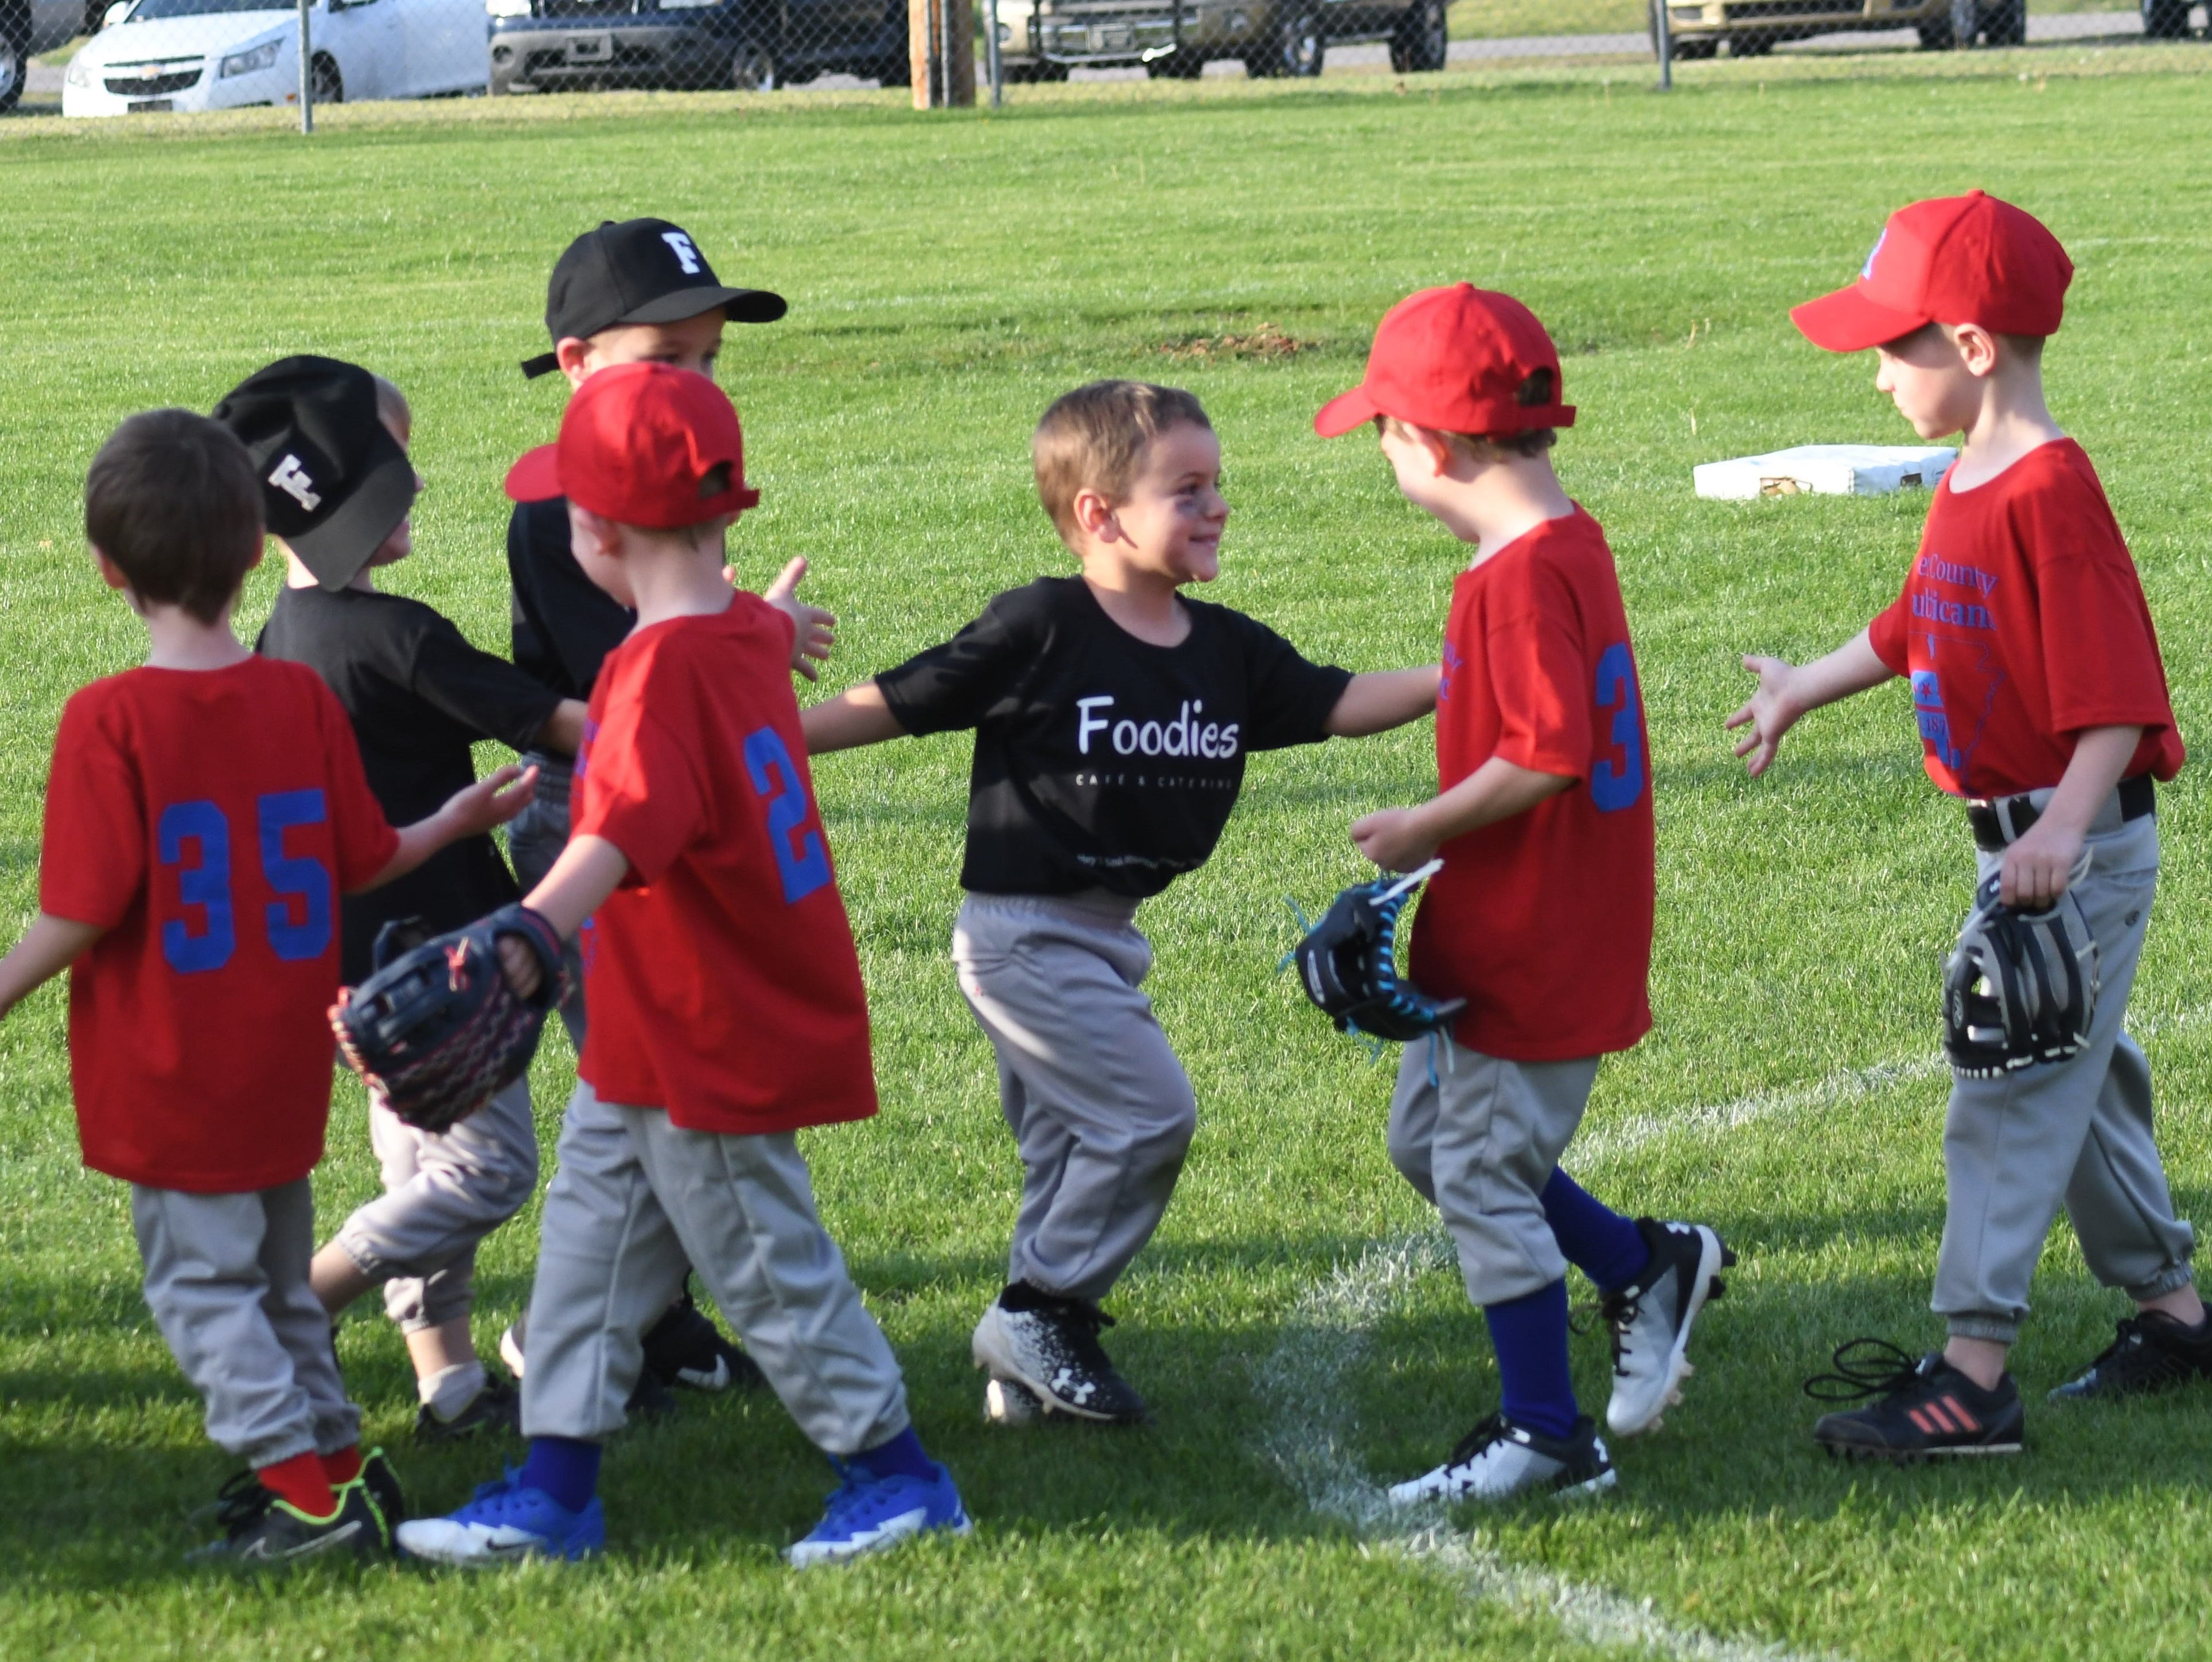 Members of the Foodies and Baxter County Republicans T-ball teams shake hands following their game Tuesday evening at Sanders, Morgan & Clarke Field.